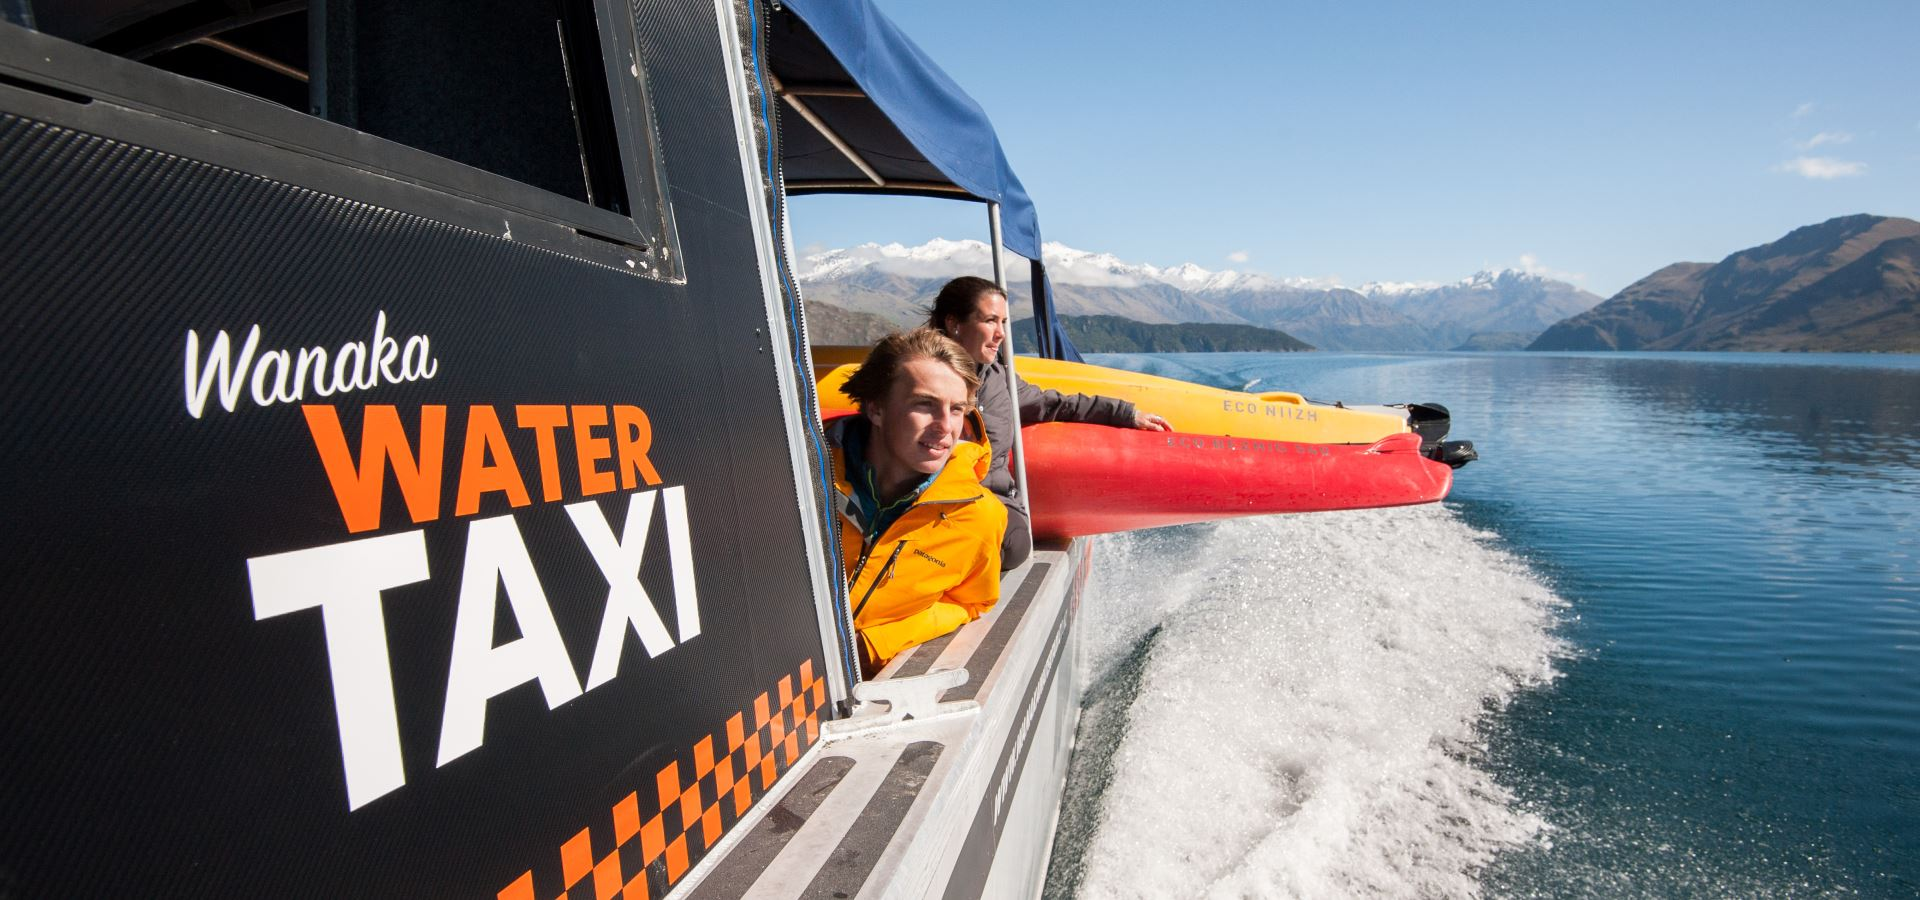 contact wanaka water taxis